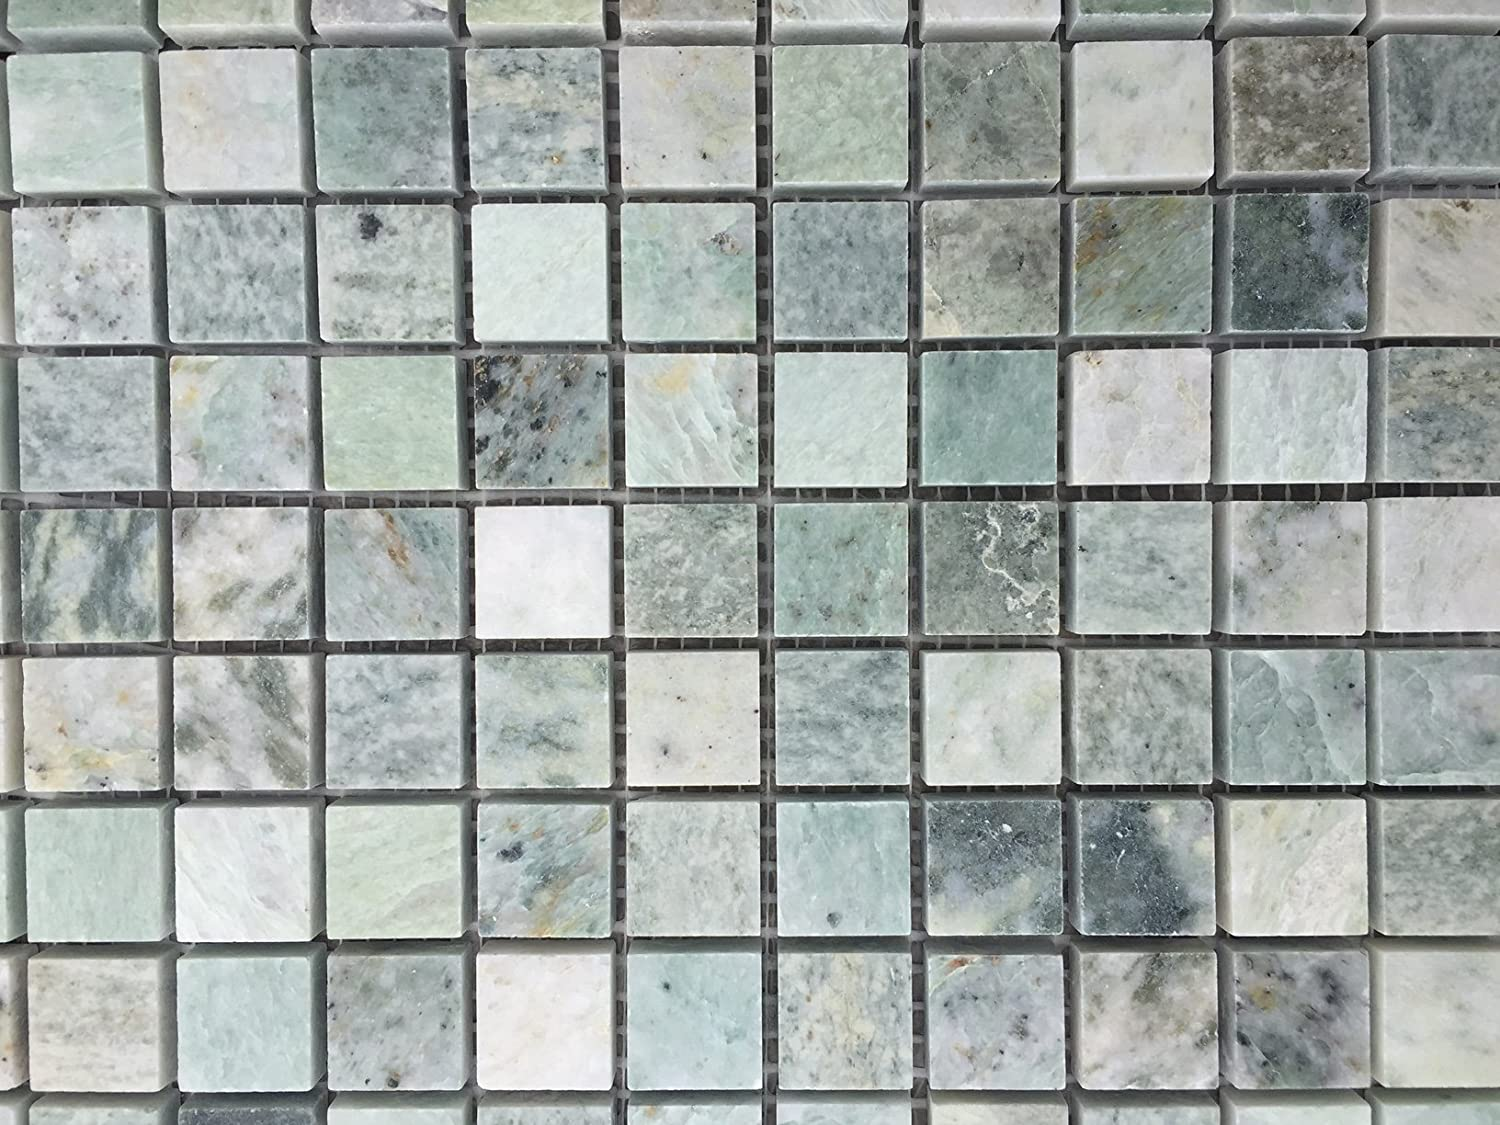 78 X 78 Ming Green Marble Onyx Polished Mosaic Tiles Amazon